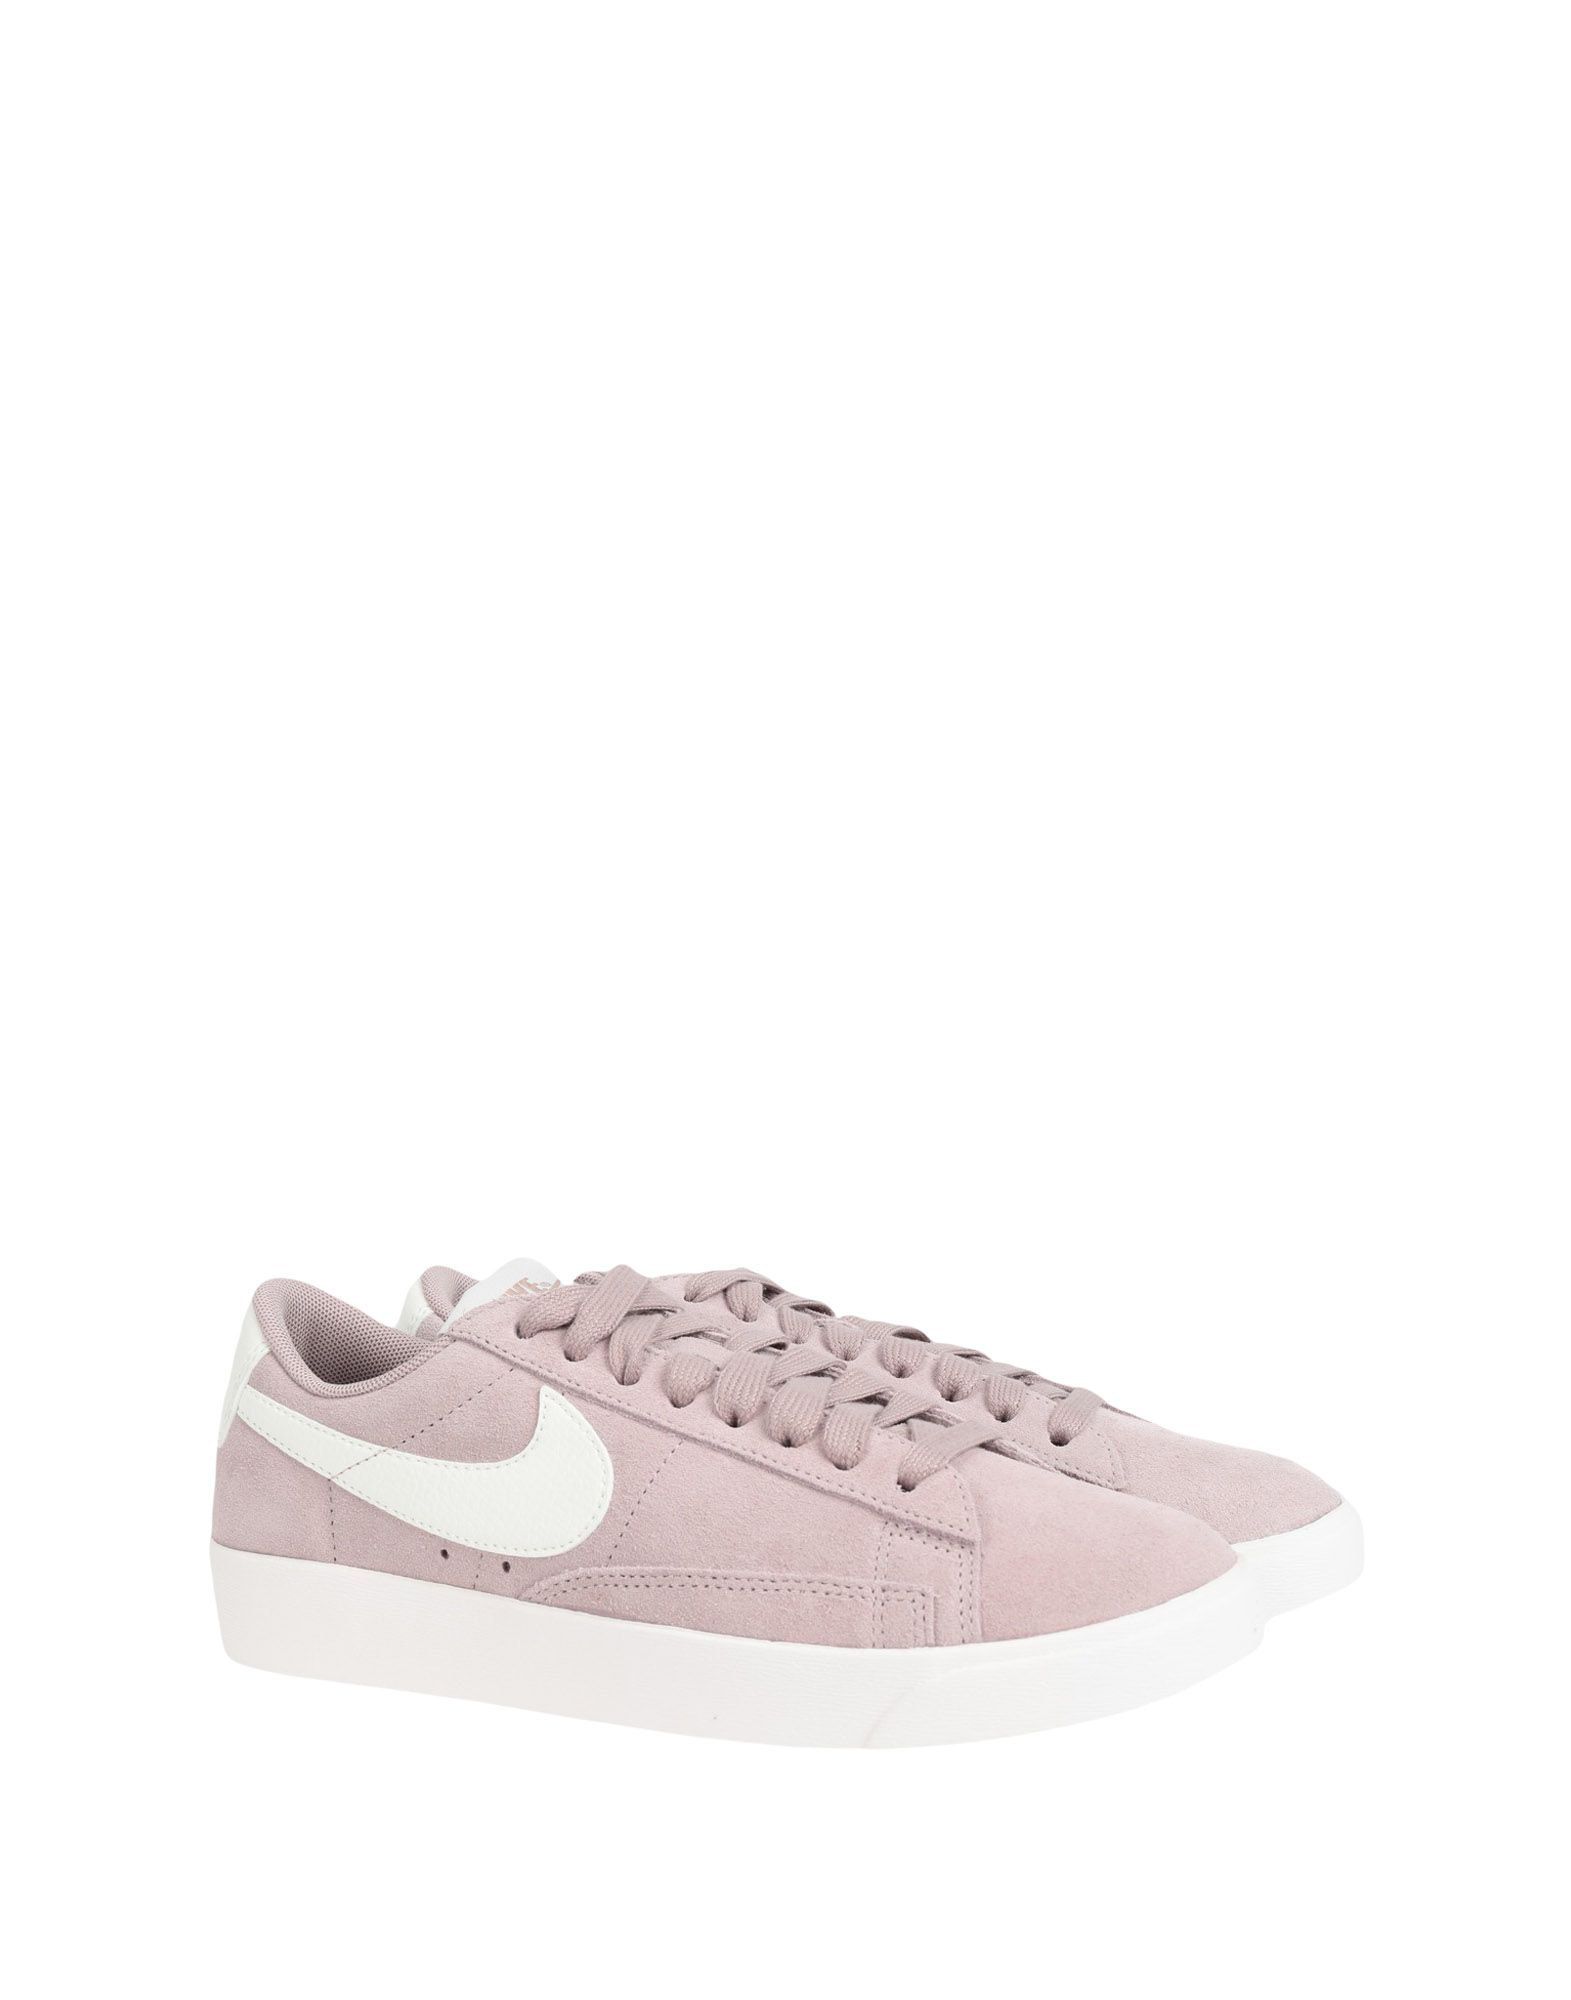 Nike  Blazer Low Sd - Sneakers Sneakers Sneakers - Women Nike Sneakers online on  United Kingdom - 11551942AP 22d56e